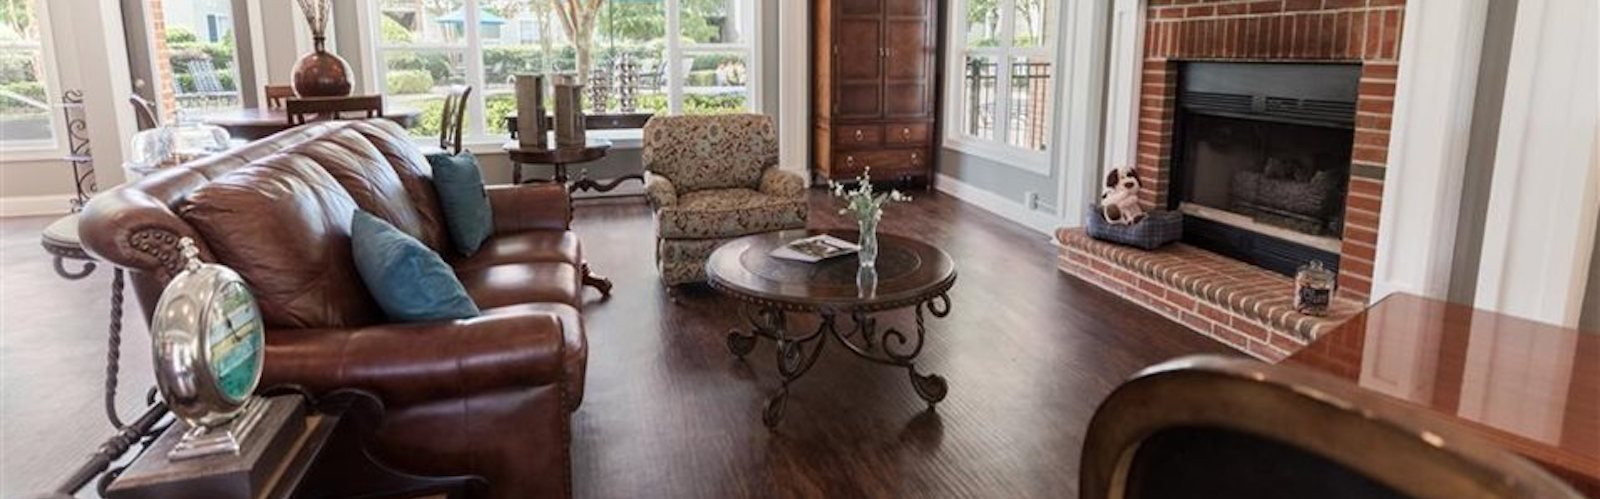 Clubhouse with comfortable seating, huge windows, and cozy fireplace at Stillwater at Grandview Cove, Simpsonville